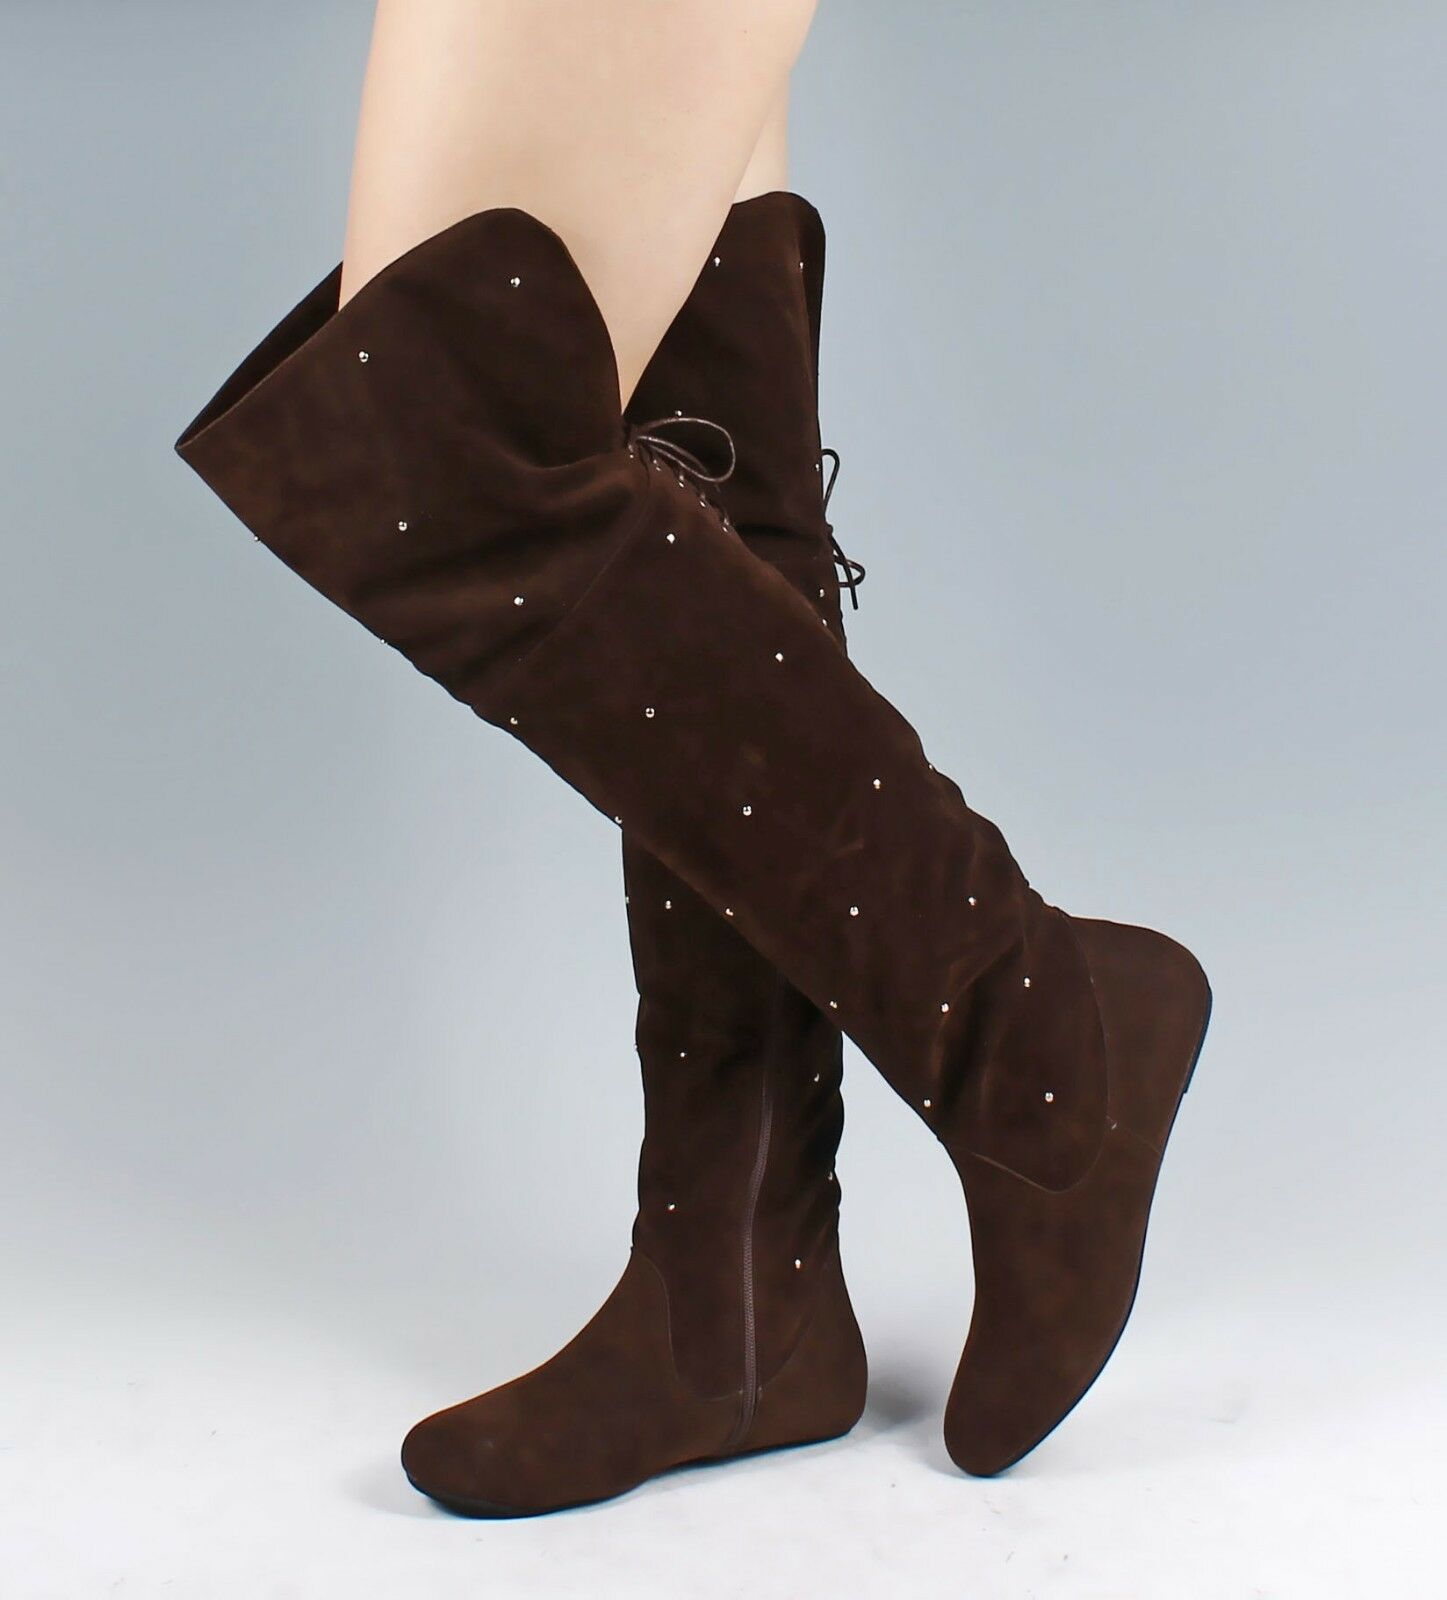 Brown Color Fashion Lace Up Foldable Womens Knee High Boots Shoes US Size 6.5